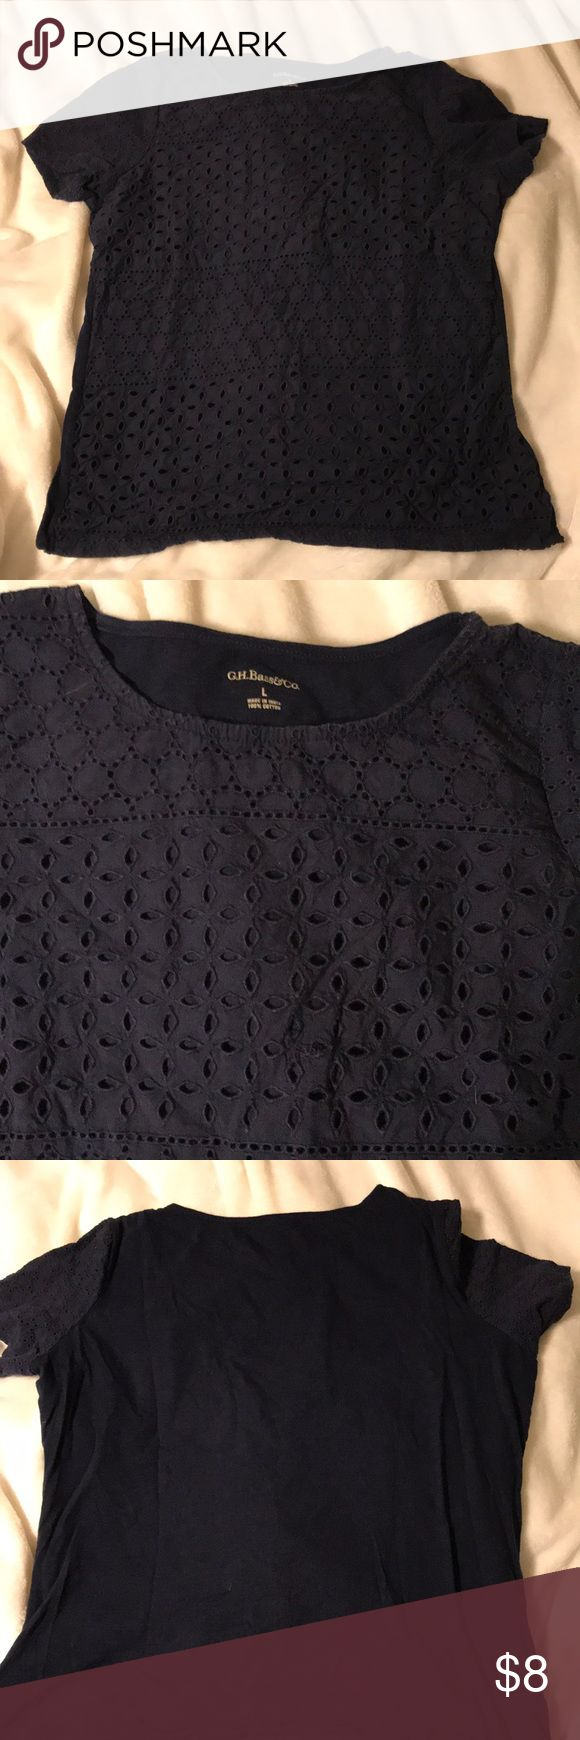 Navy Eyelet Tee GH Bass eyelet lace tee with cap sleeves. 100% cotton. Scoop neck. Lightly worn. Bass Tops